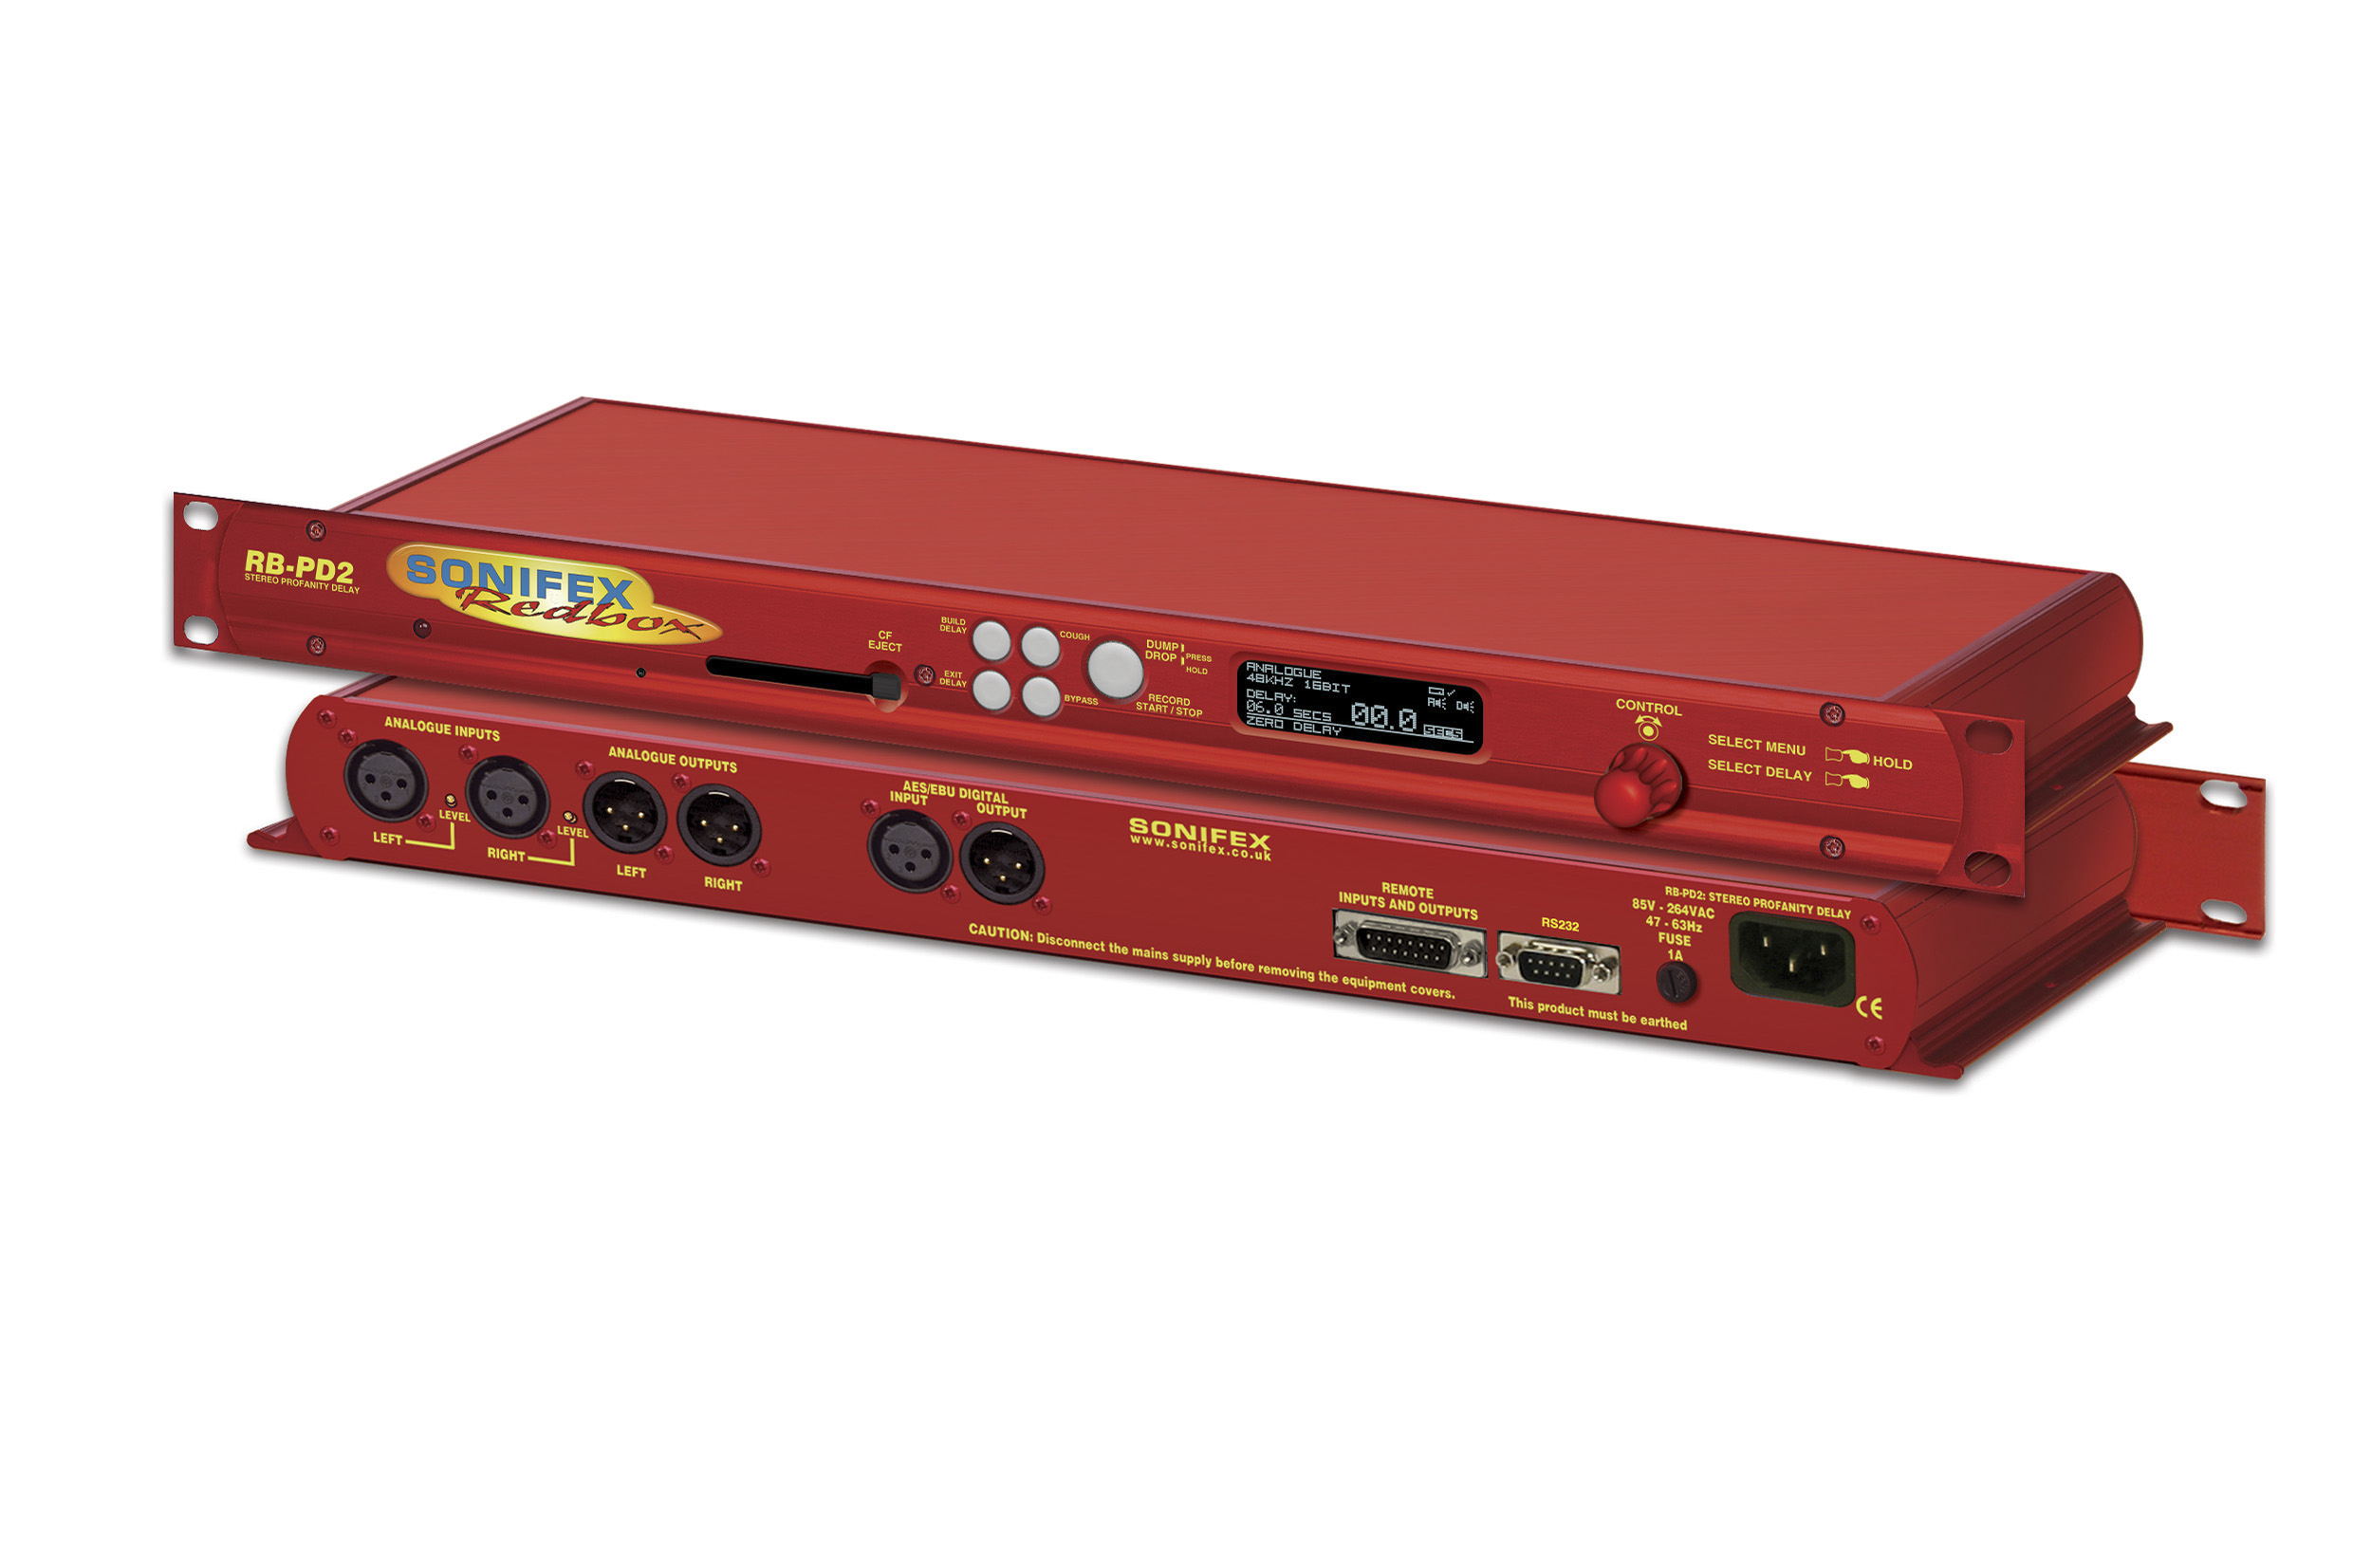 Independent Audio Pro Distributors Automatic Mains Disconnect For Live Broadcast Programs To Prevent Unwanted Or Obscene Material From Being Transmitted It Features An Stretch Algorithm That Allows